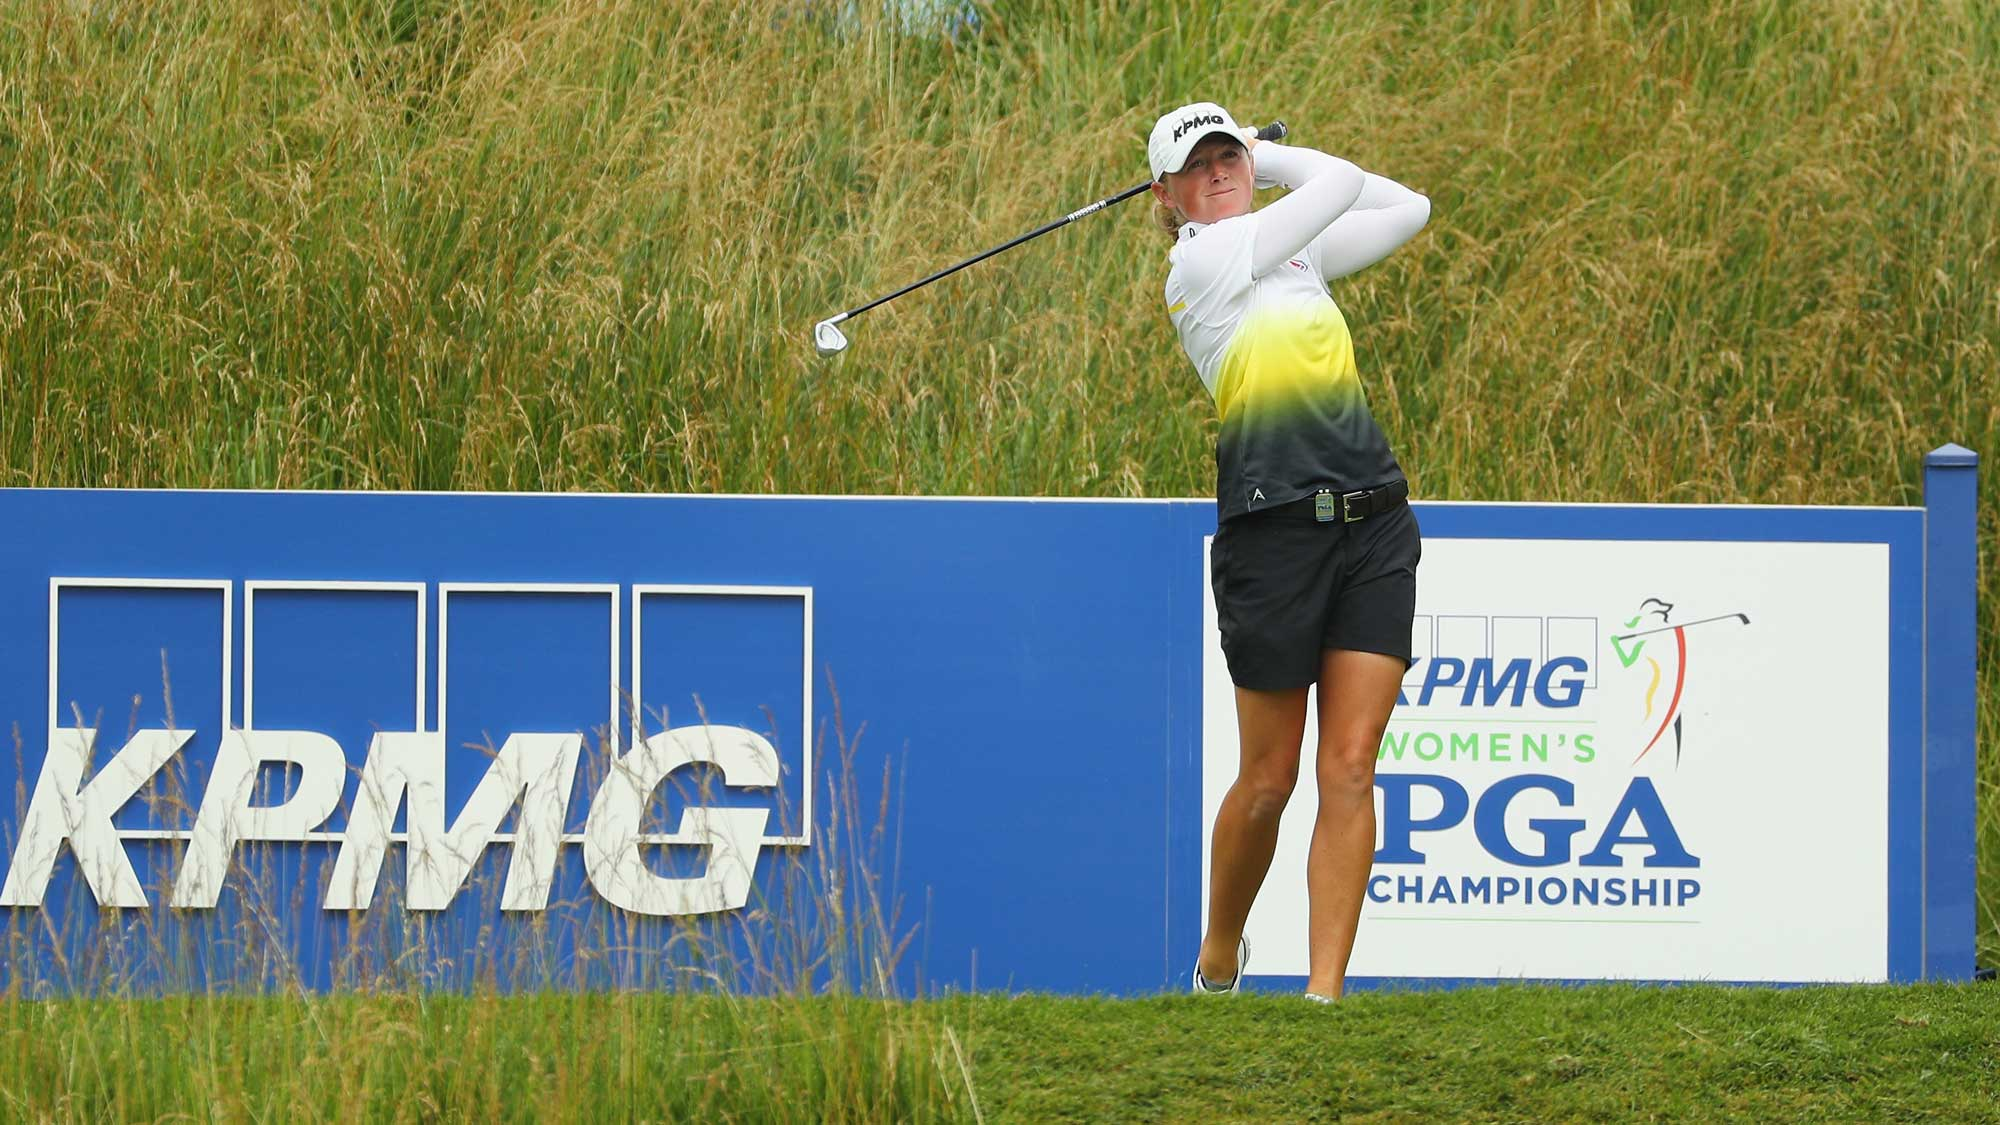 Stacy Lewis watches a tee shot on the 16th hole during the second round of the 2017 KPMG Women's PGA Championship